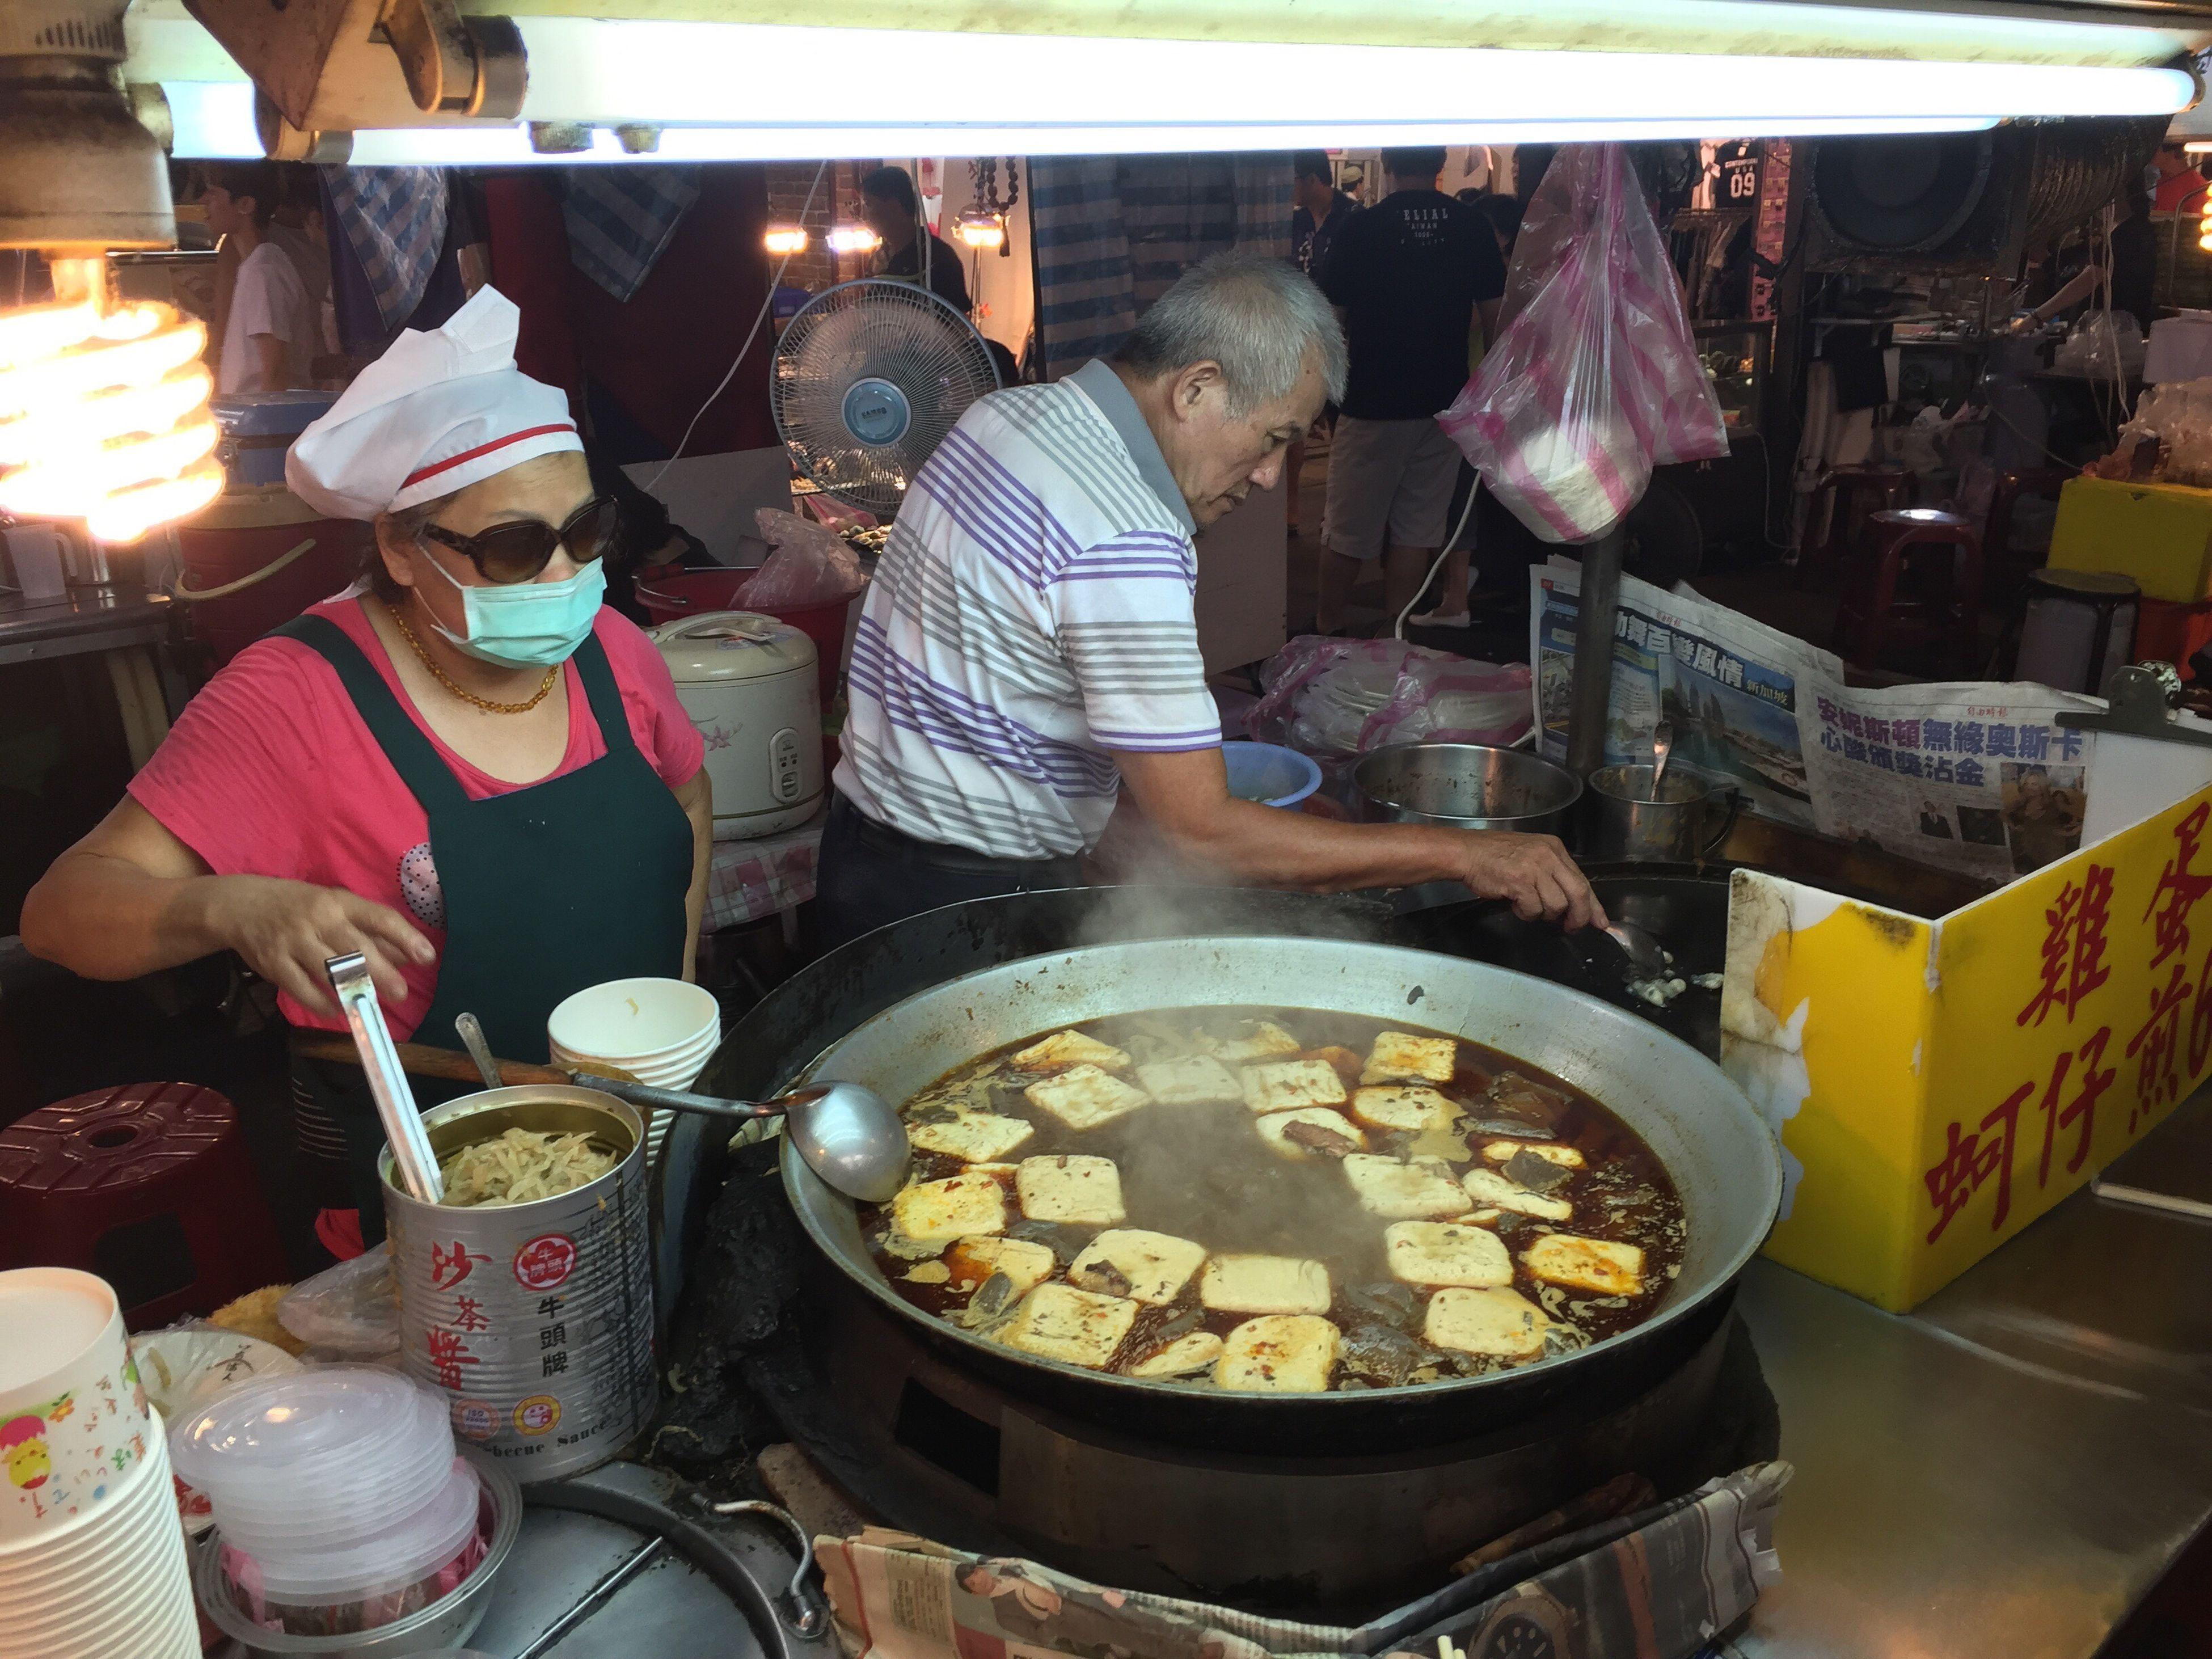 real people, food, food and drink, preparation, market stall, freshness, market, men, retail, indoors, women, lifestyles, healthy eating, day, ready-to-eat, one person, people